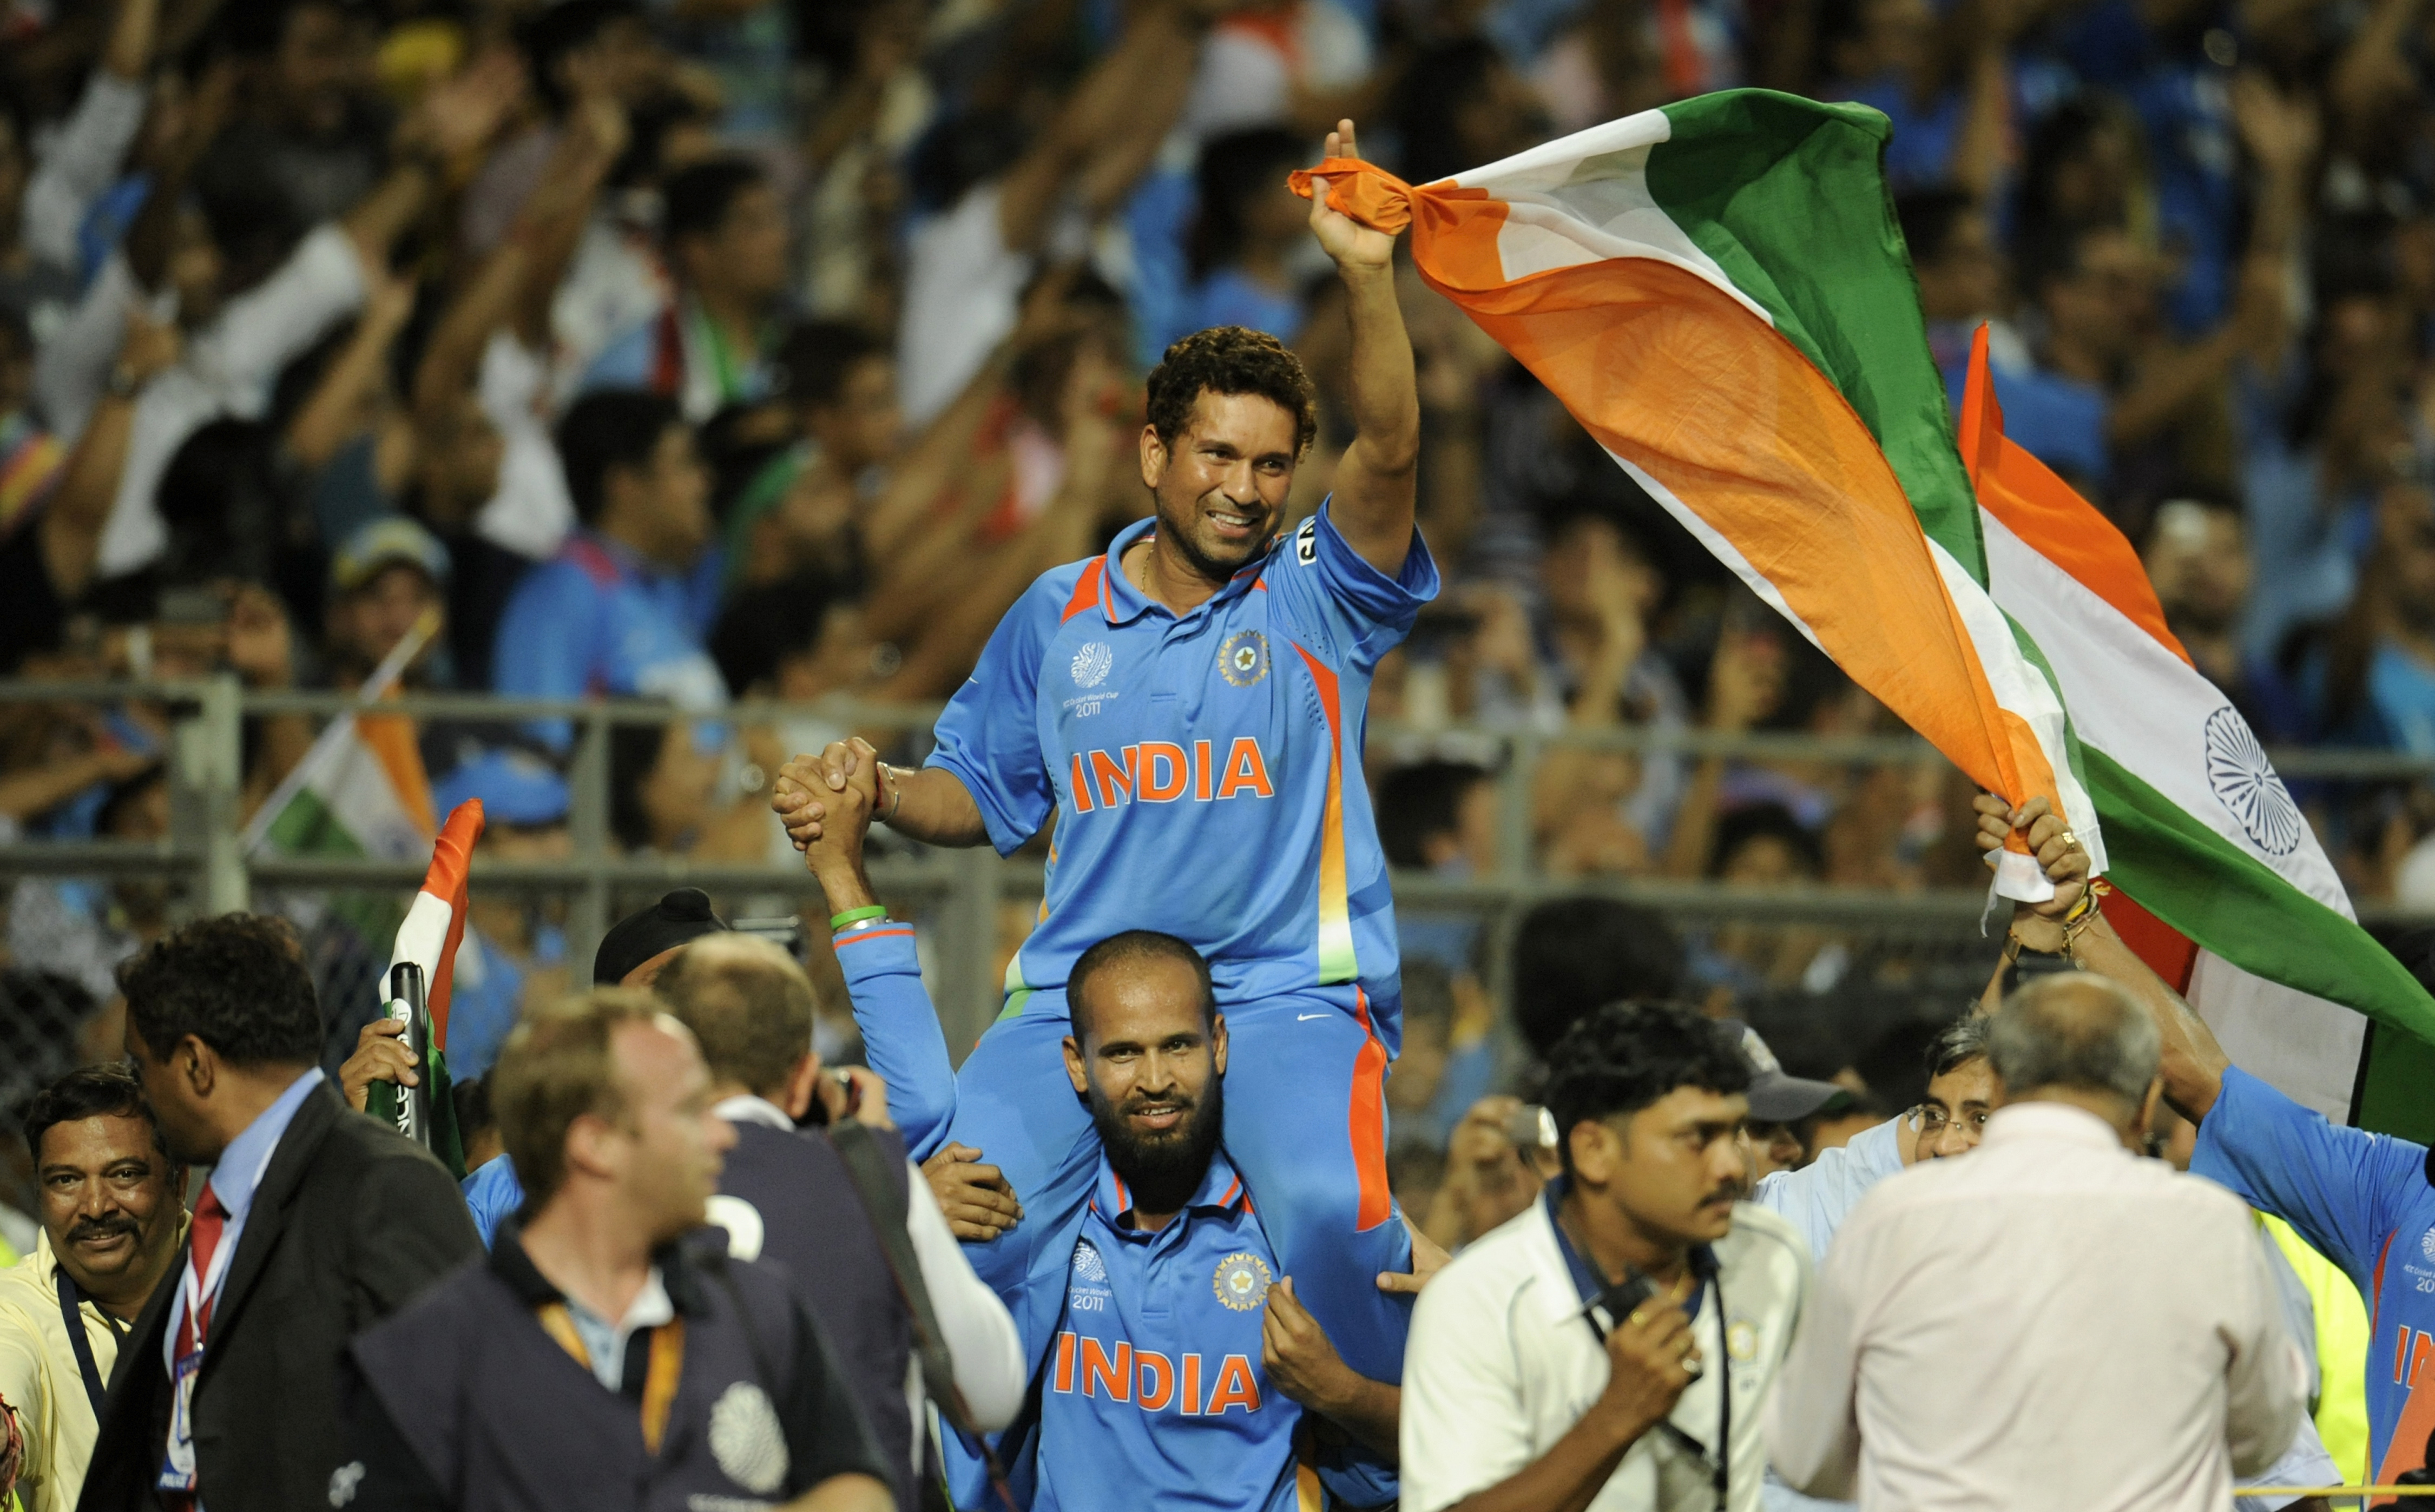 Sachin Tendulkar for India Cricket Team